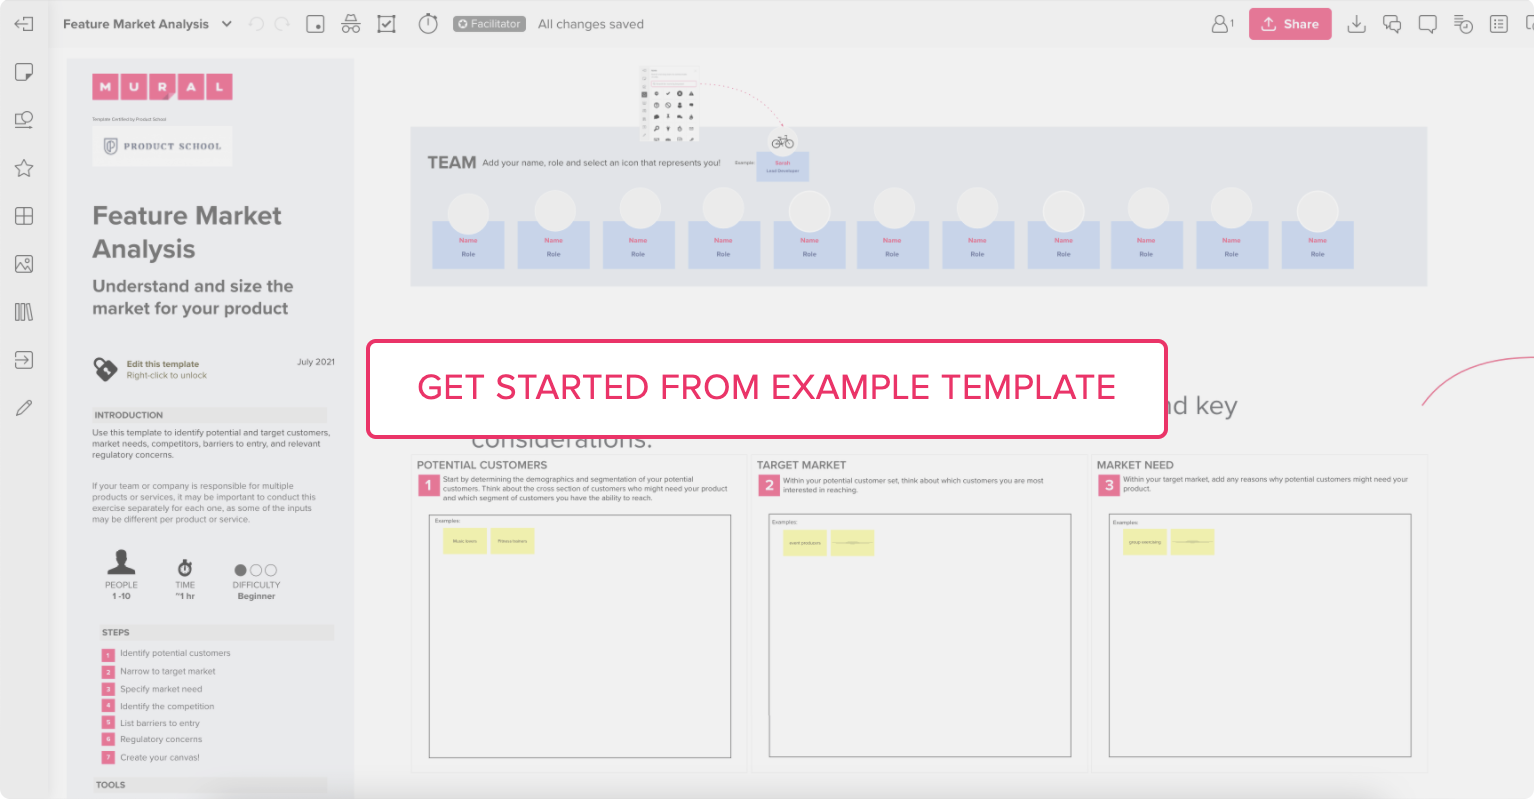 The Feature Market Analysis template